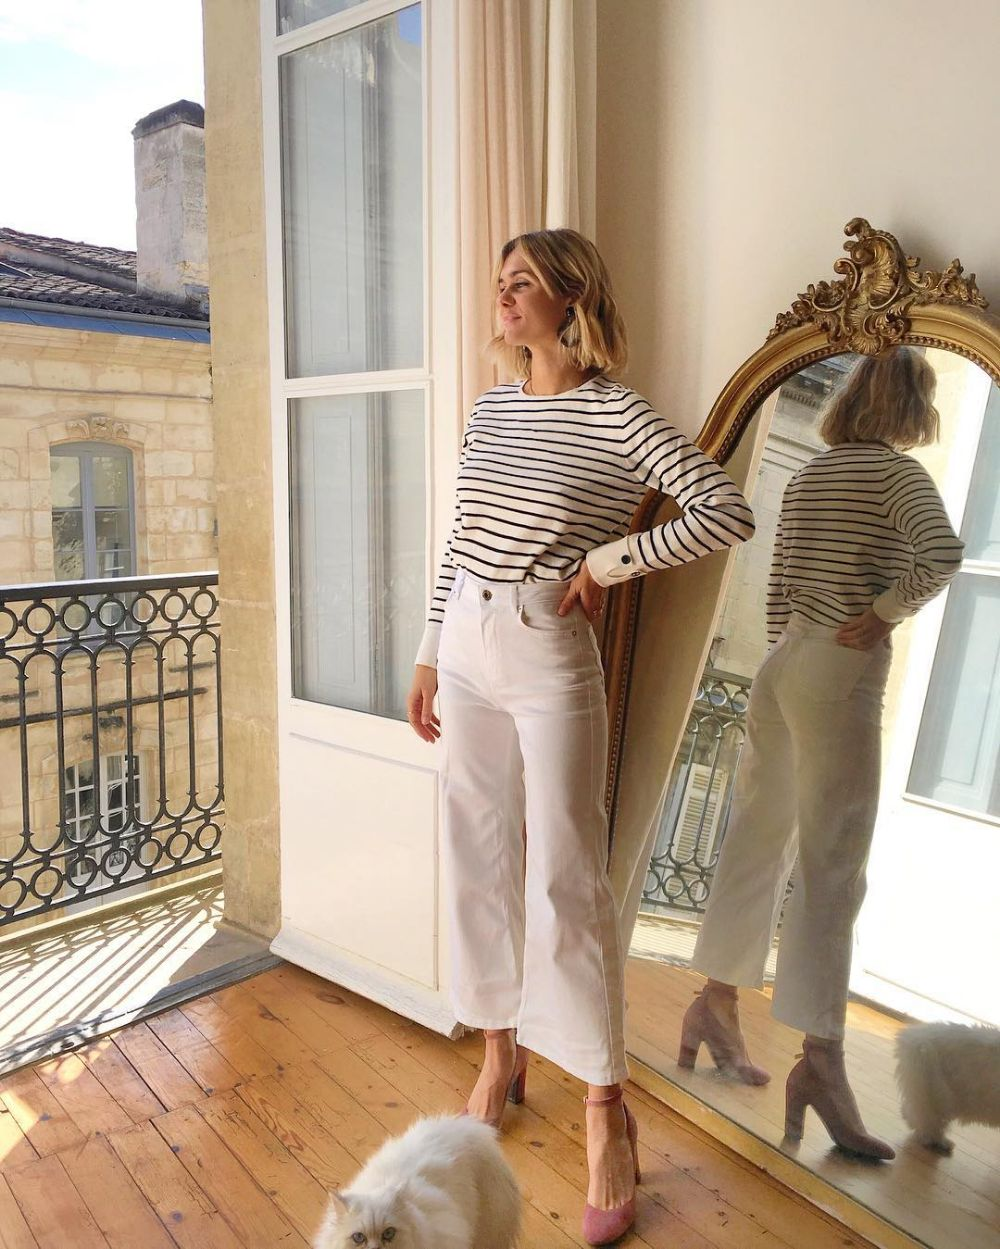 15 French Style Influencers Who Nail the Effortless Parisian Look